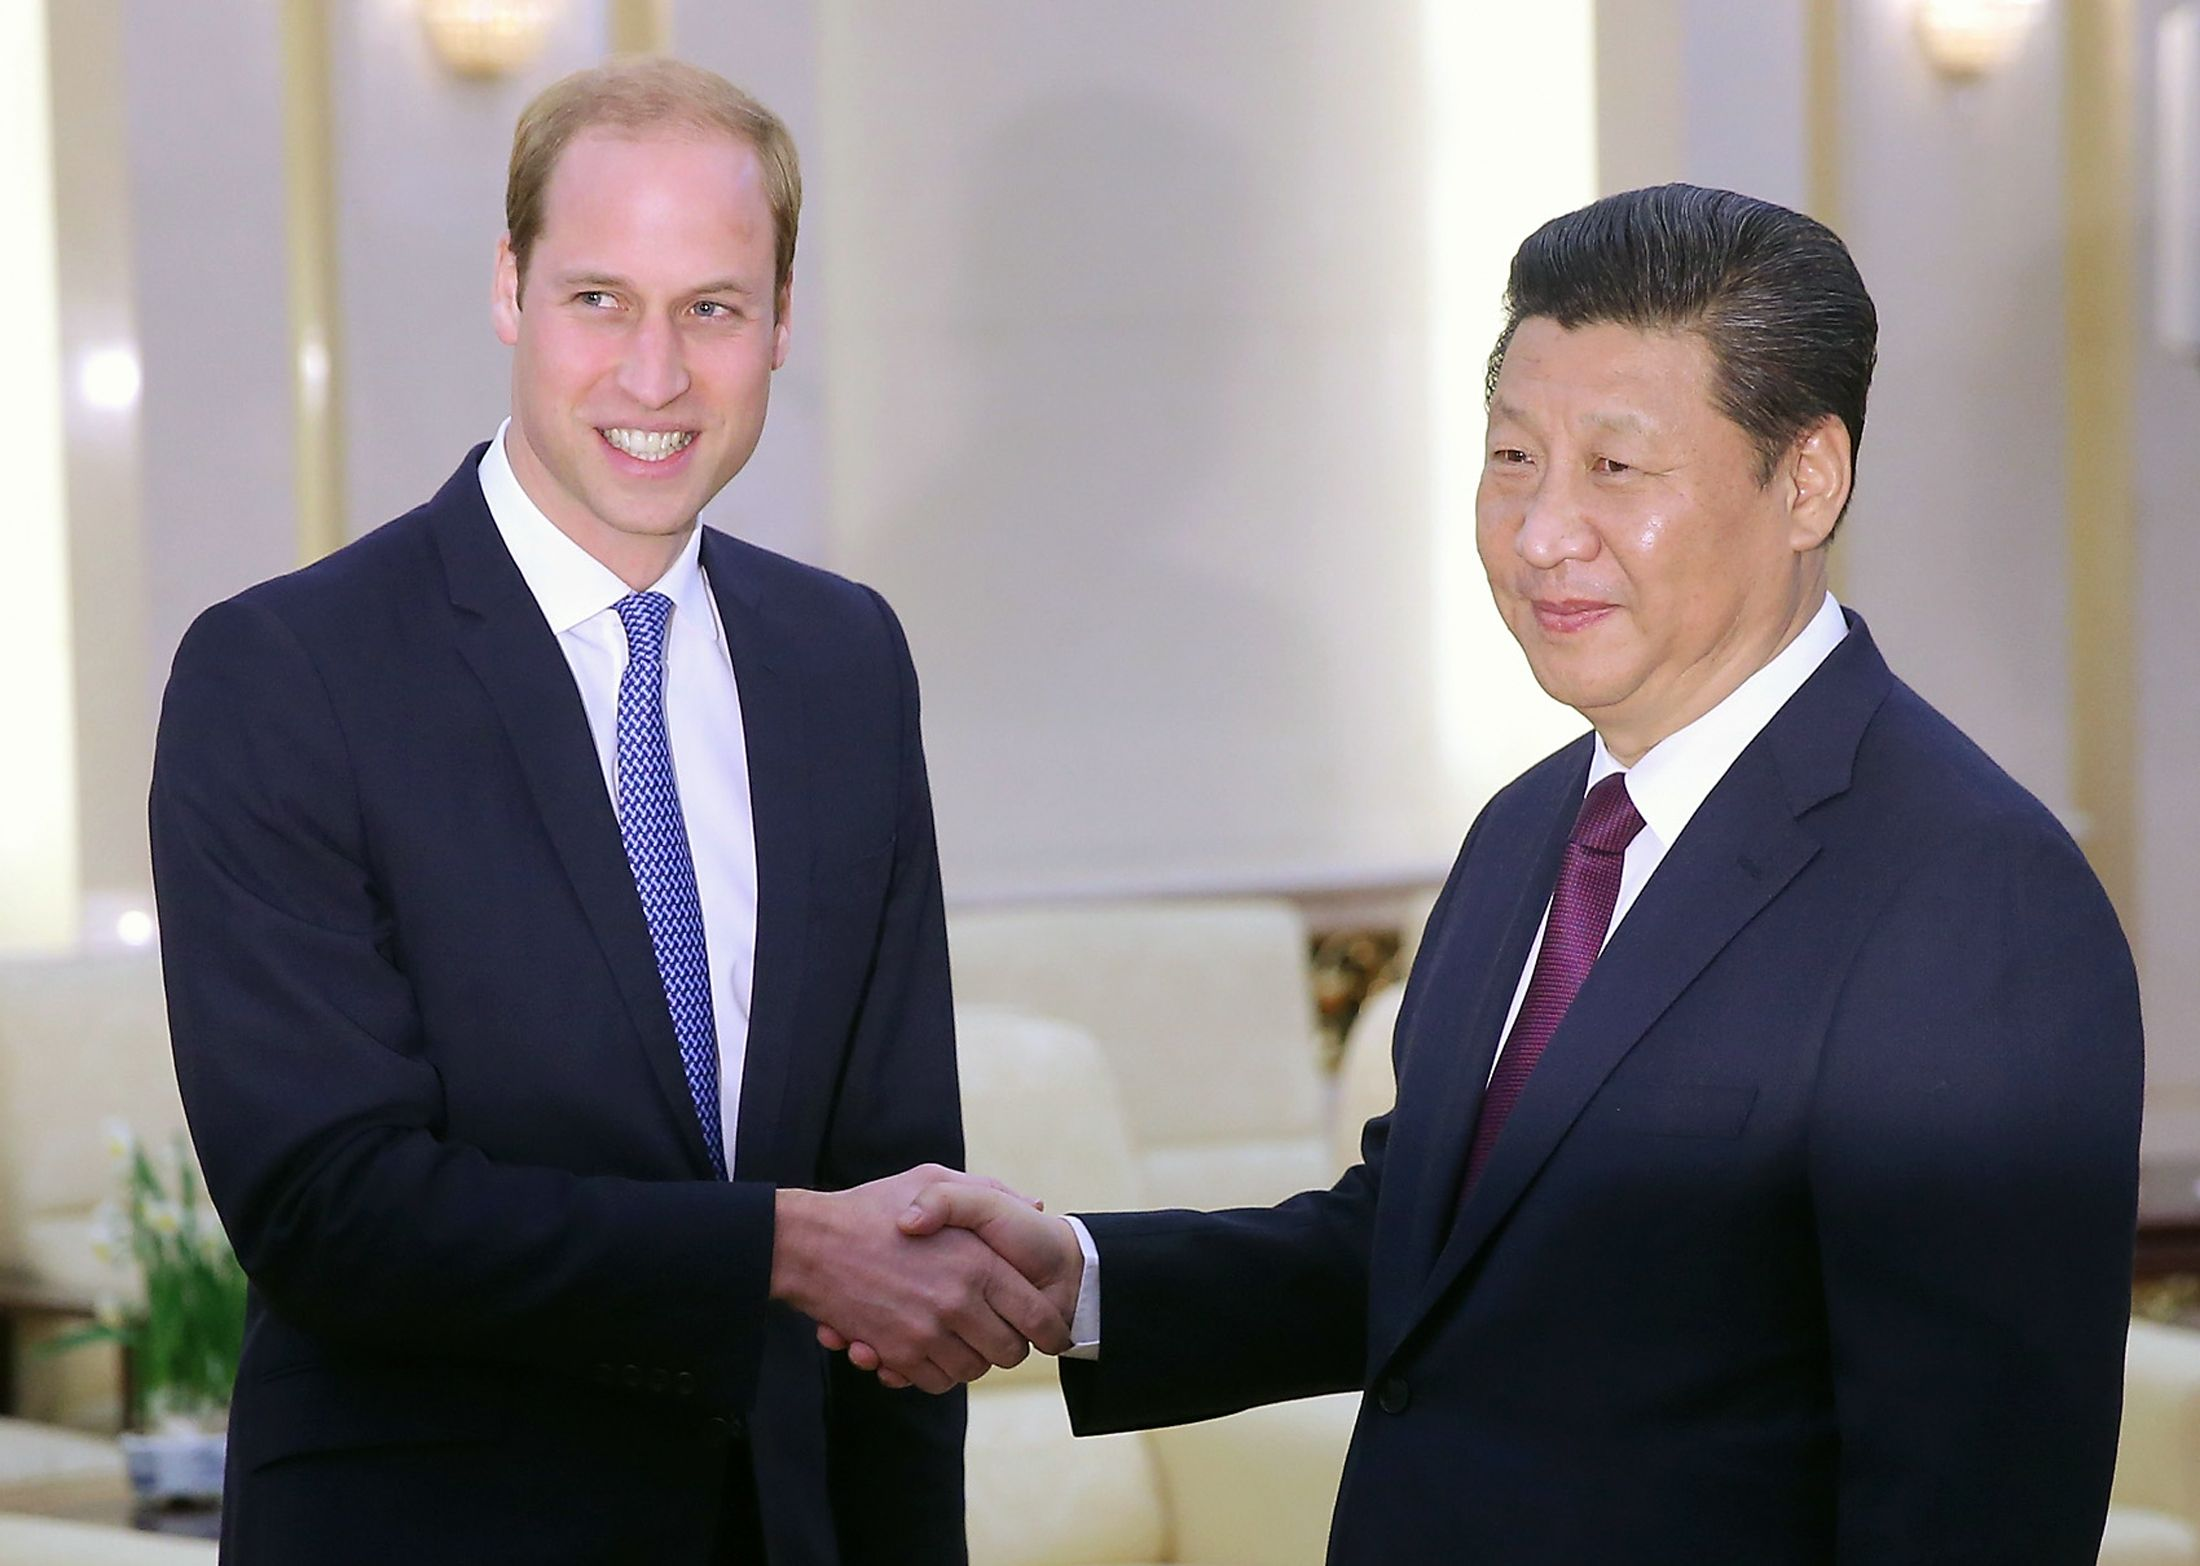 Prince William Xi Jinping